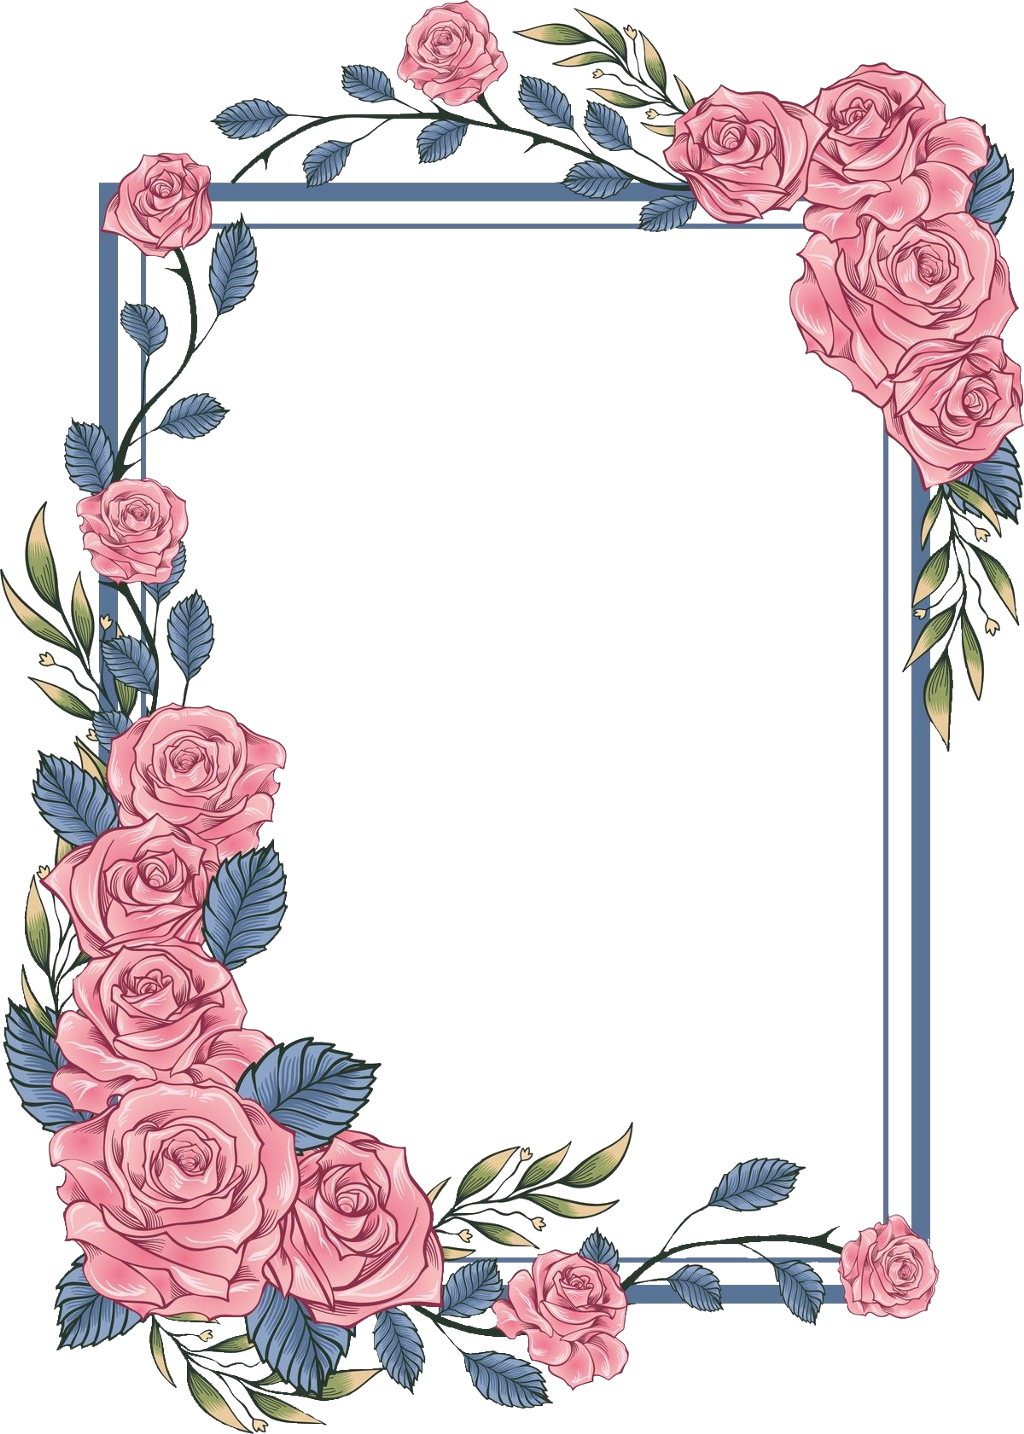 #rose #square #frame #geometric #colorful #kpop #wedding #layers #overlay #marks #painting #watercolor #broder